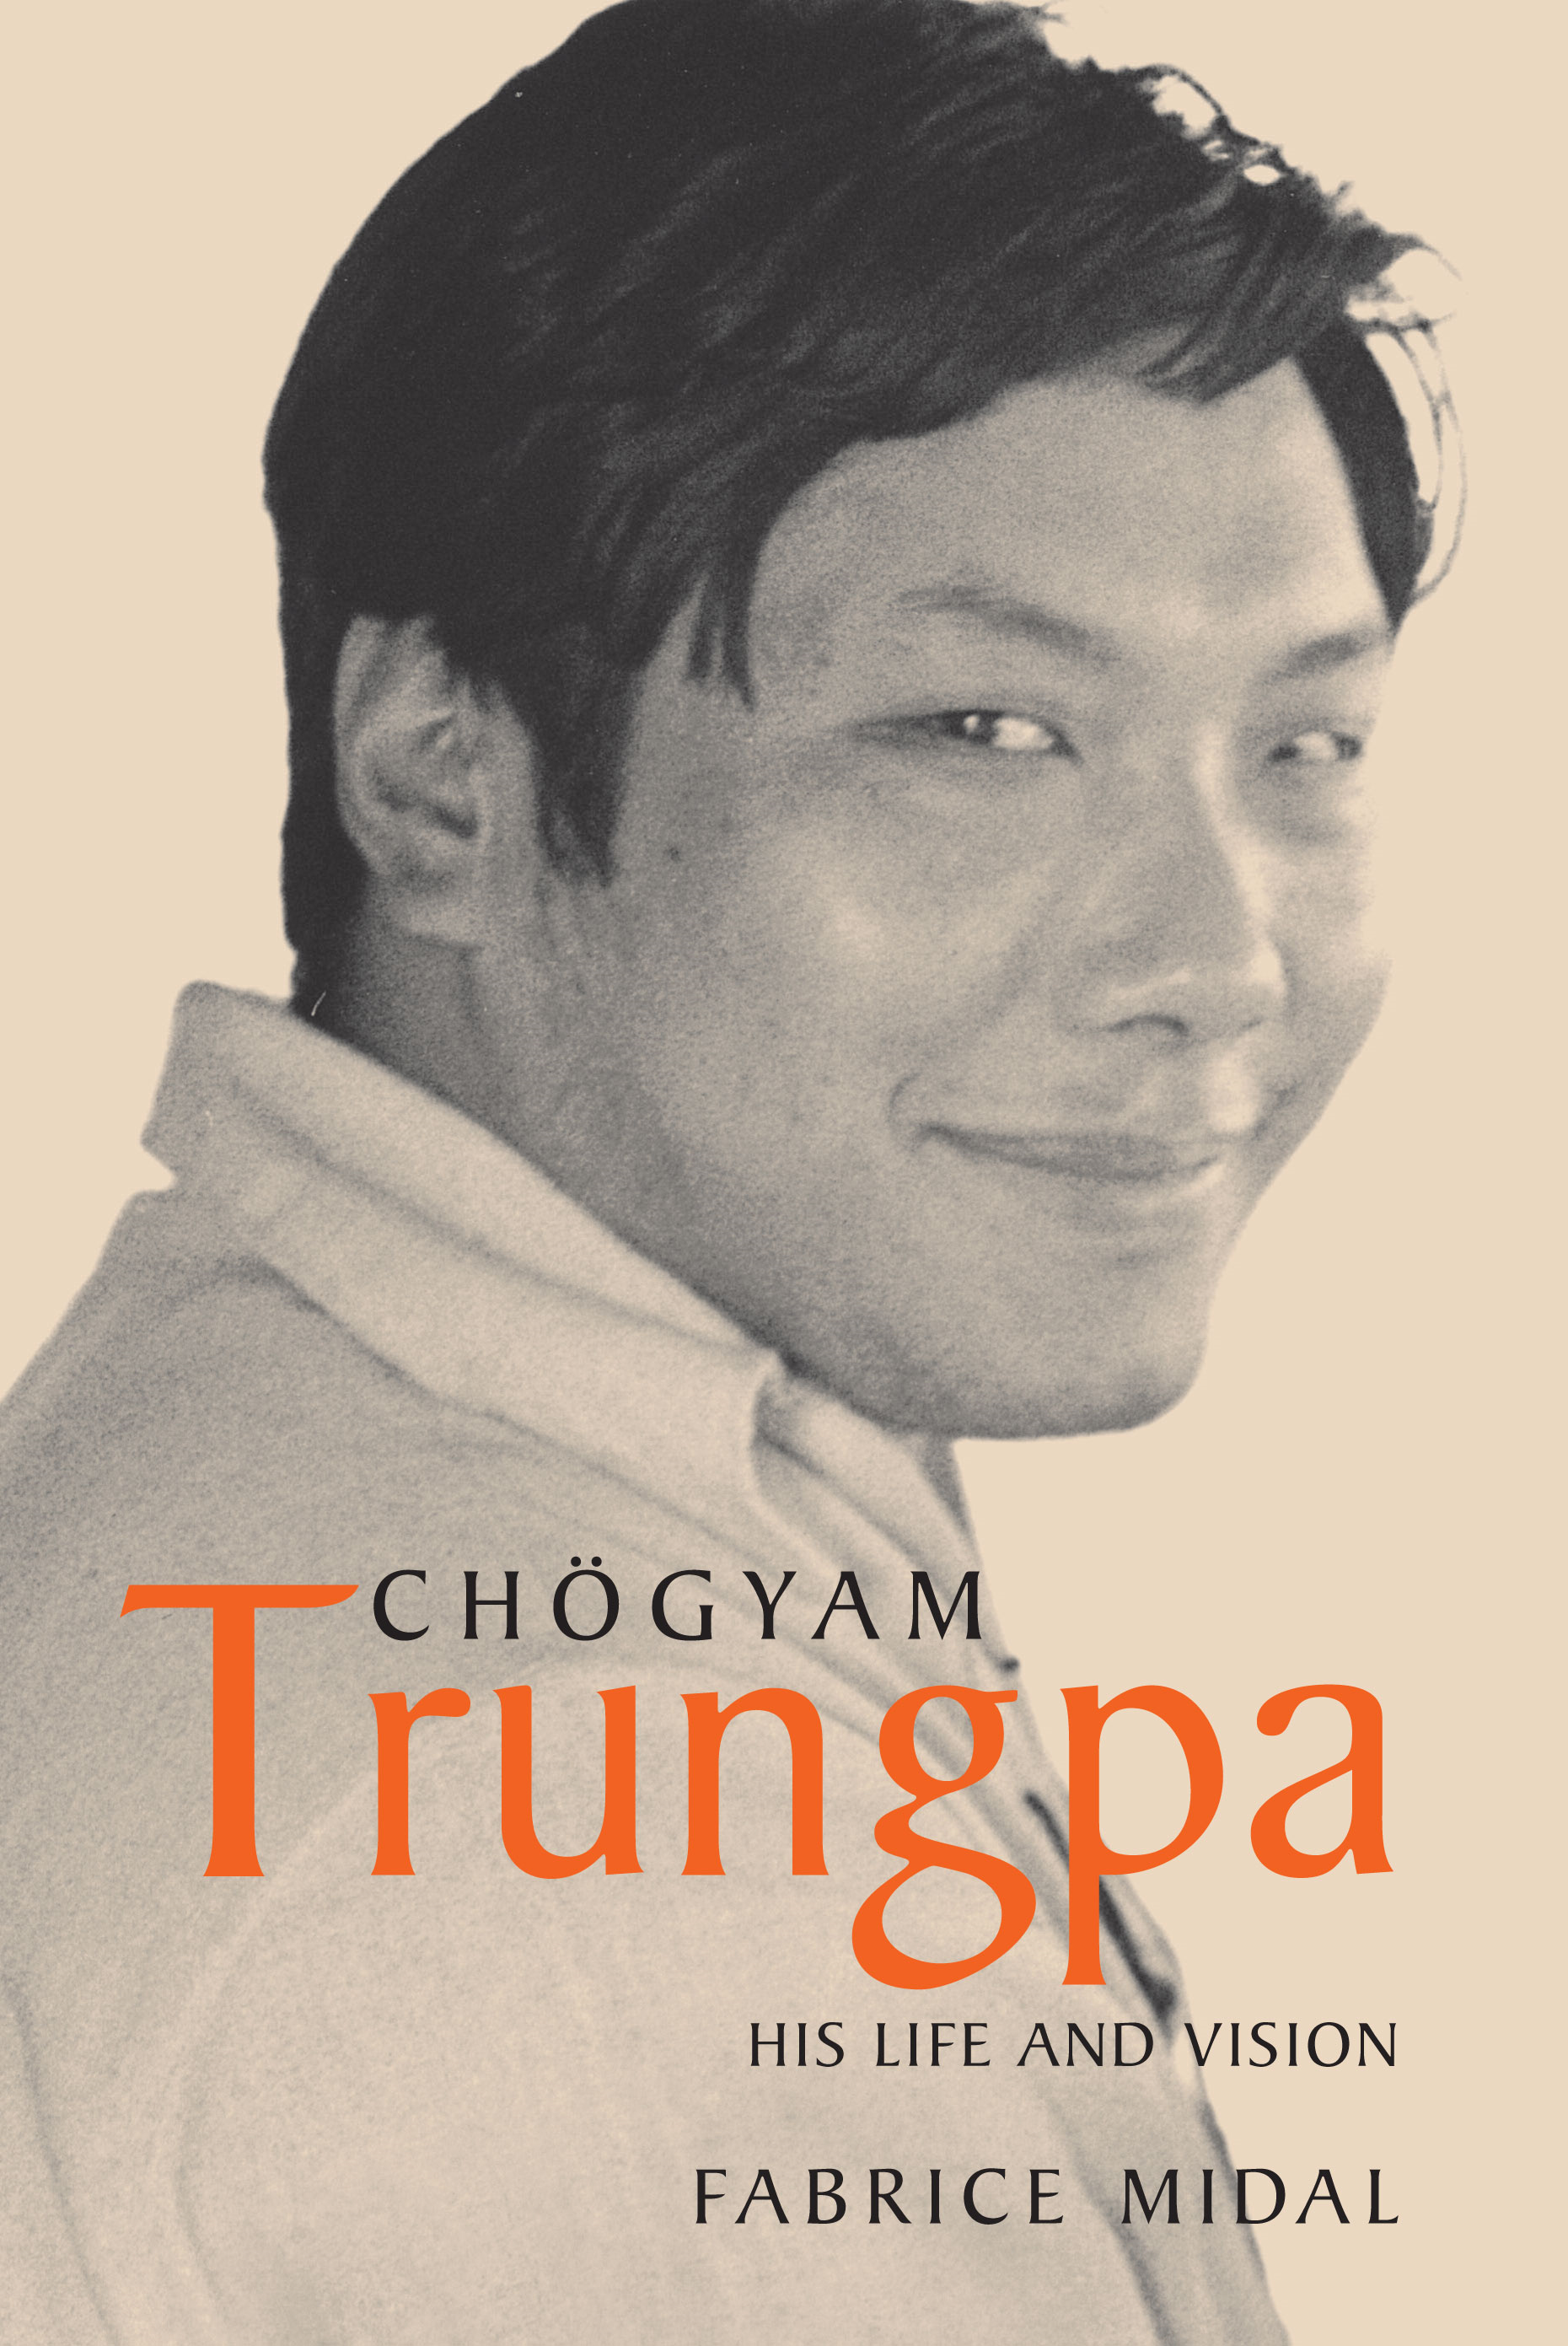 Chogyam Trungpa: His Life and Vision By: Fabrice Midal